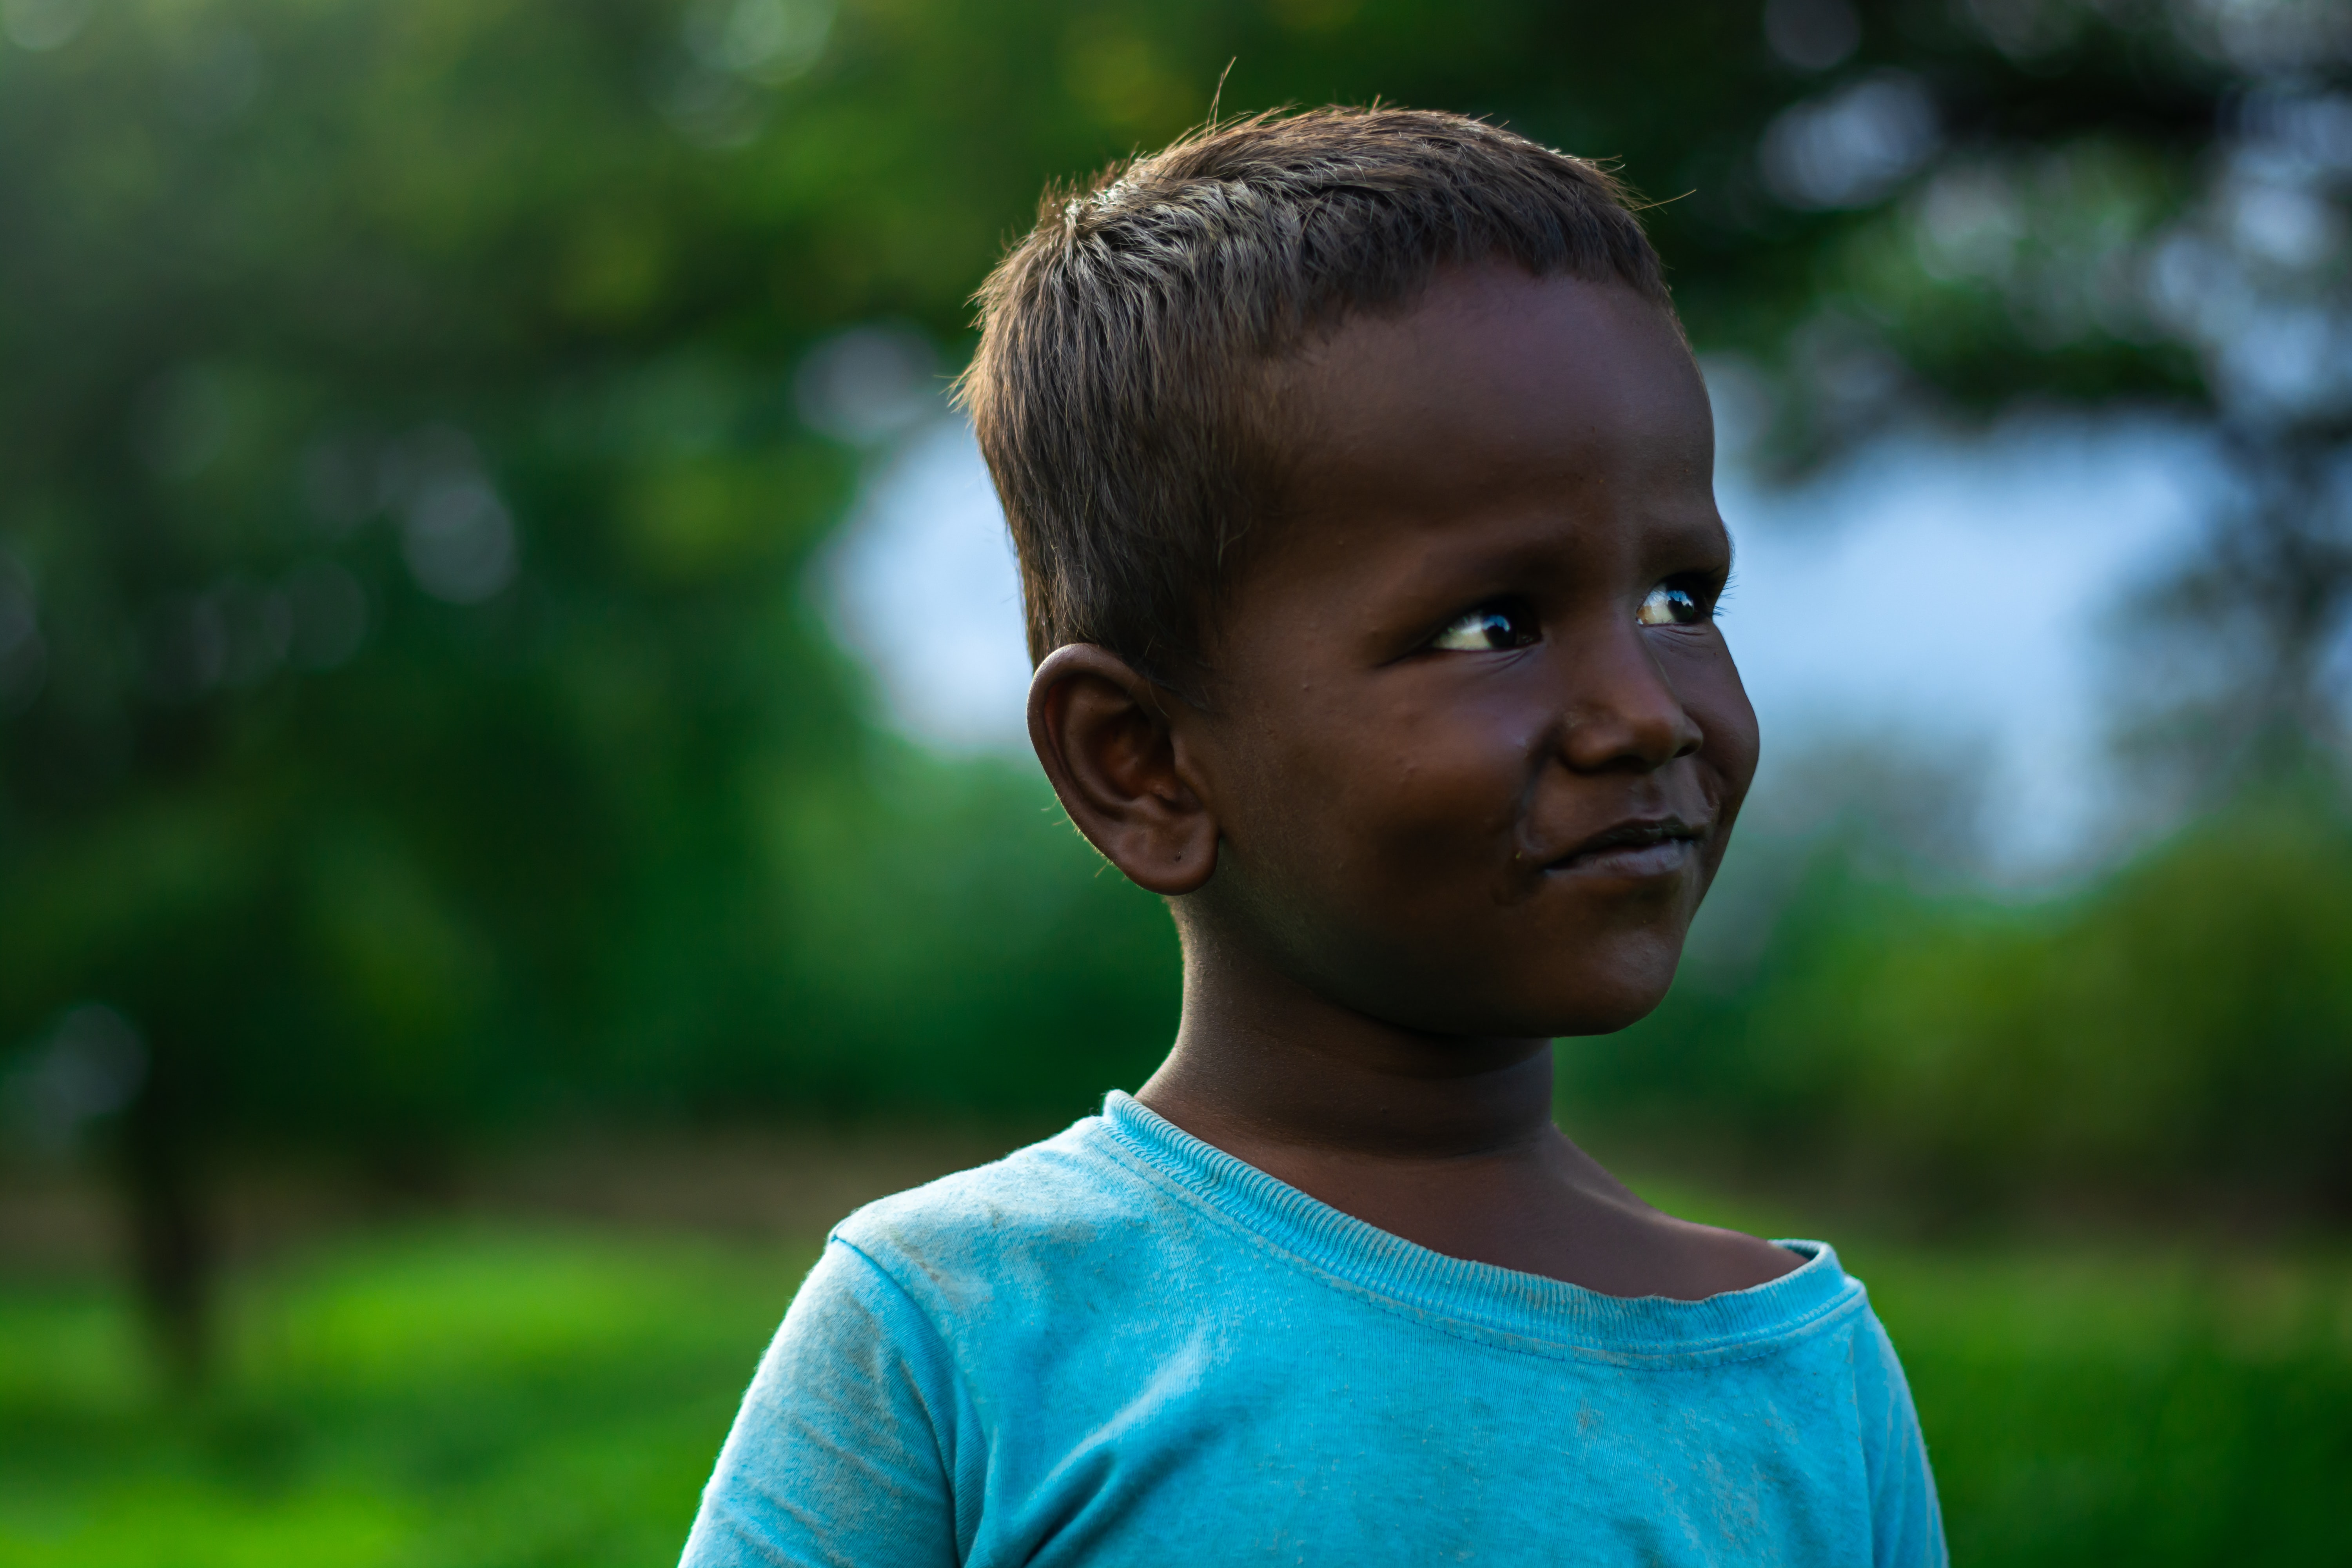 Field Stories of Hope: reminders of how God is working around the world